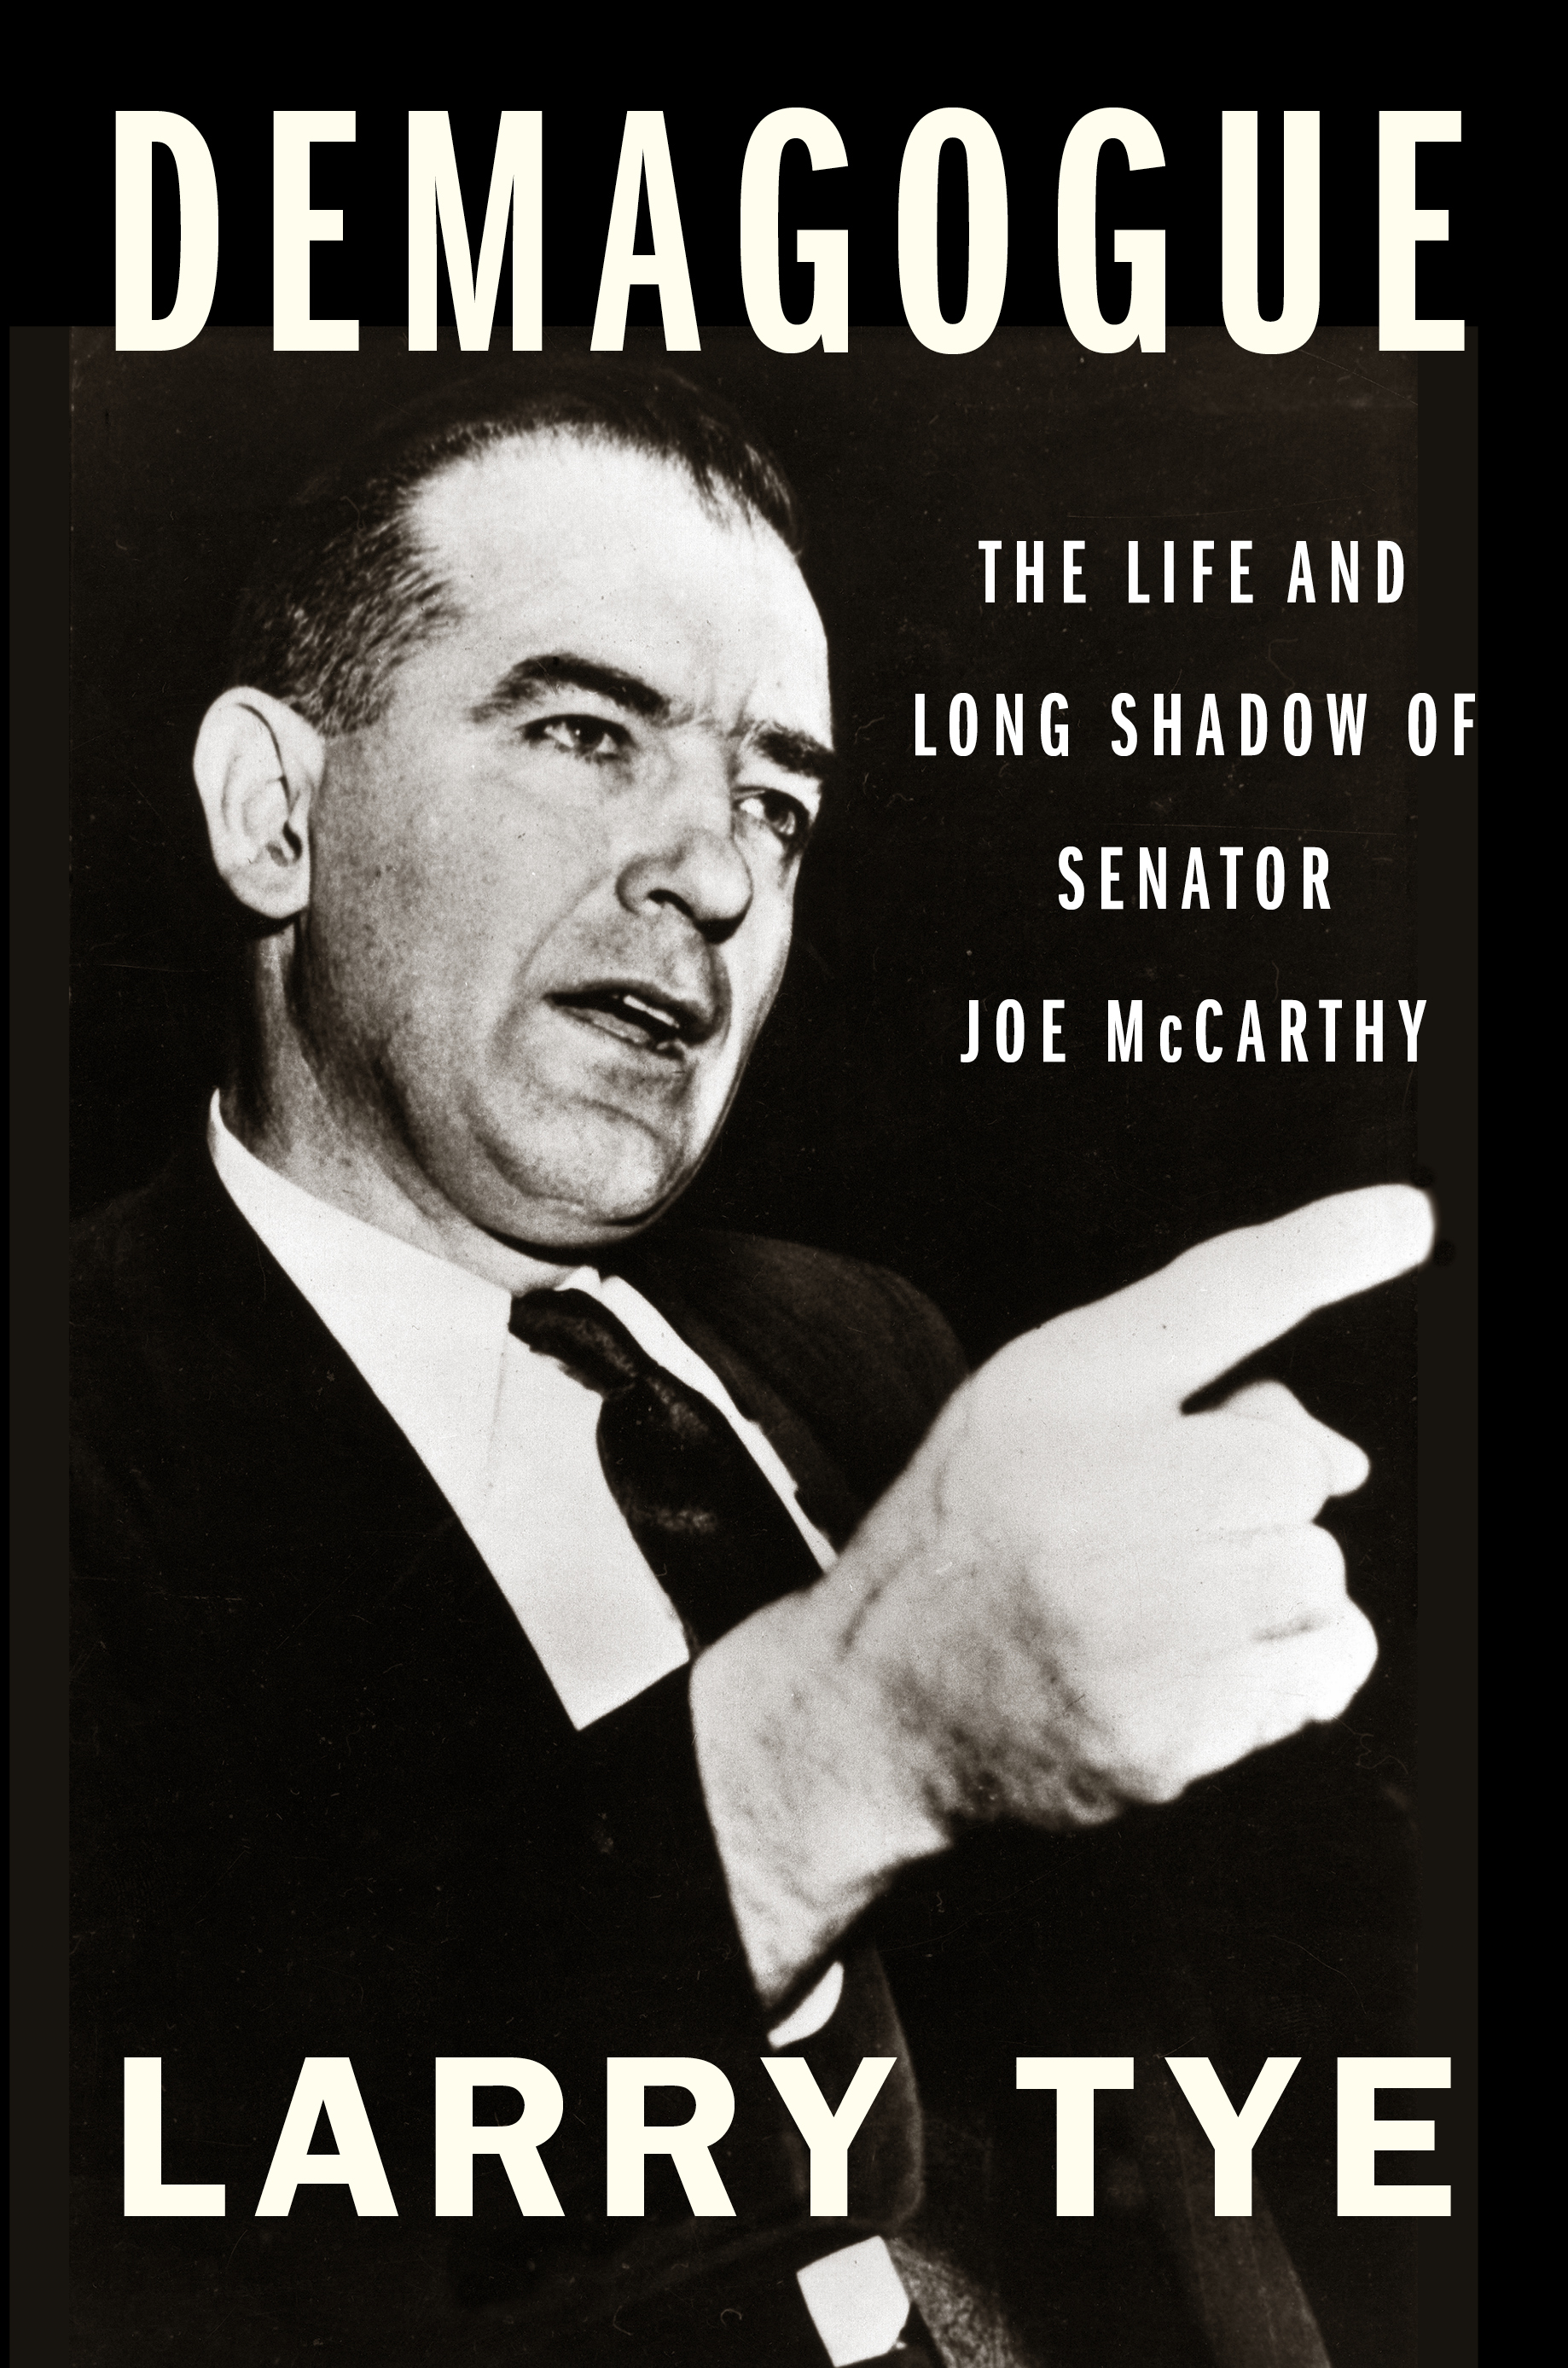 Demagogue: The Life and Long Shadow of Senator Joe McCarthy